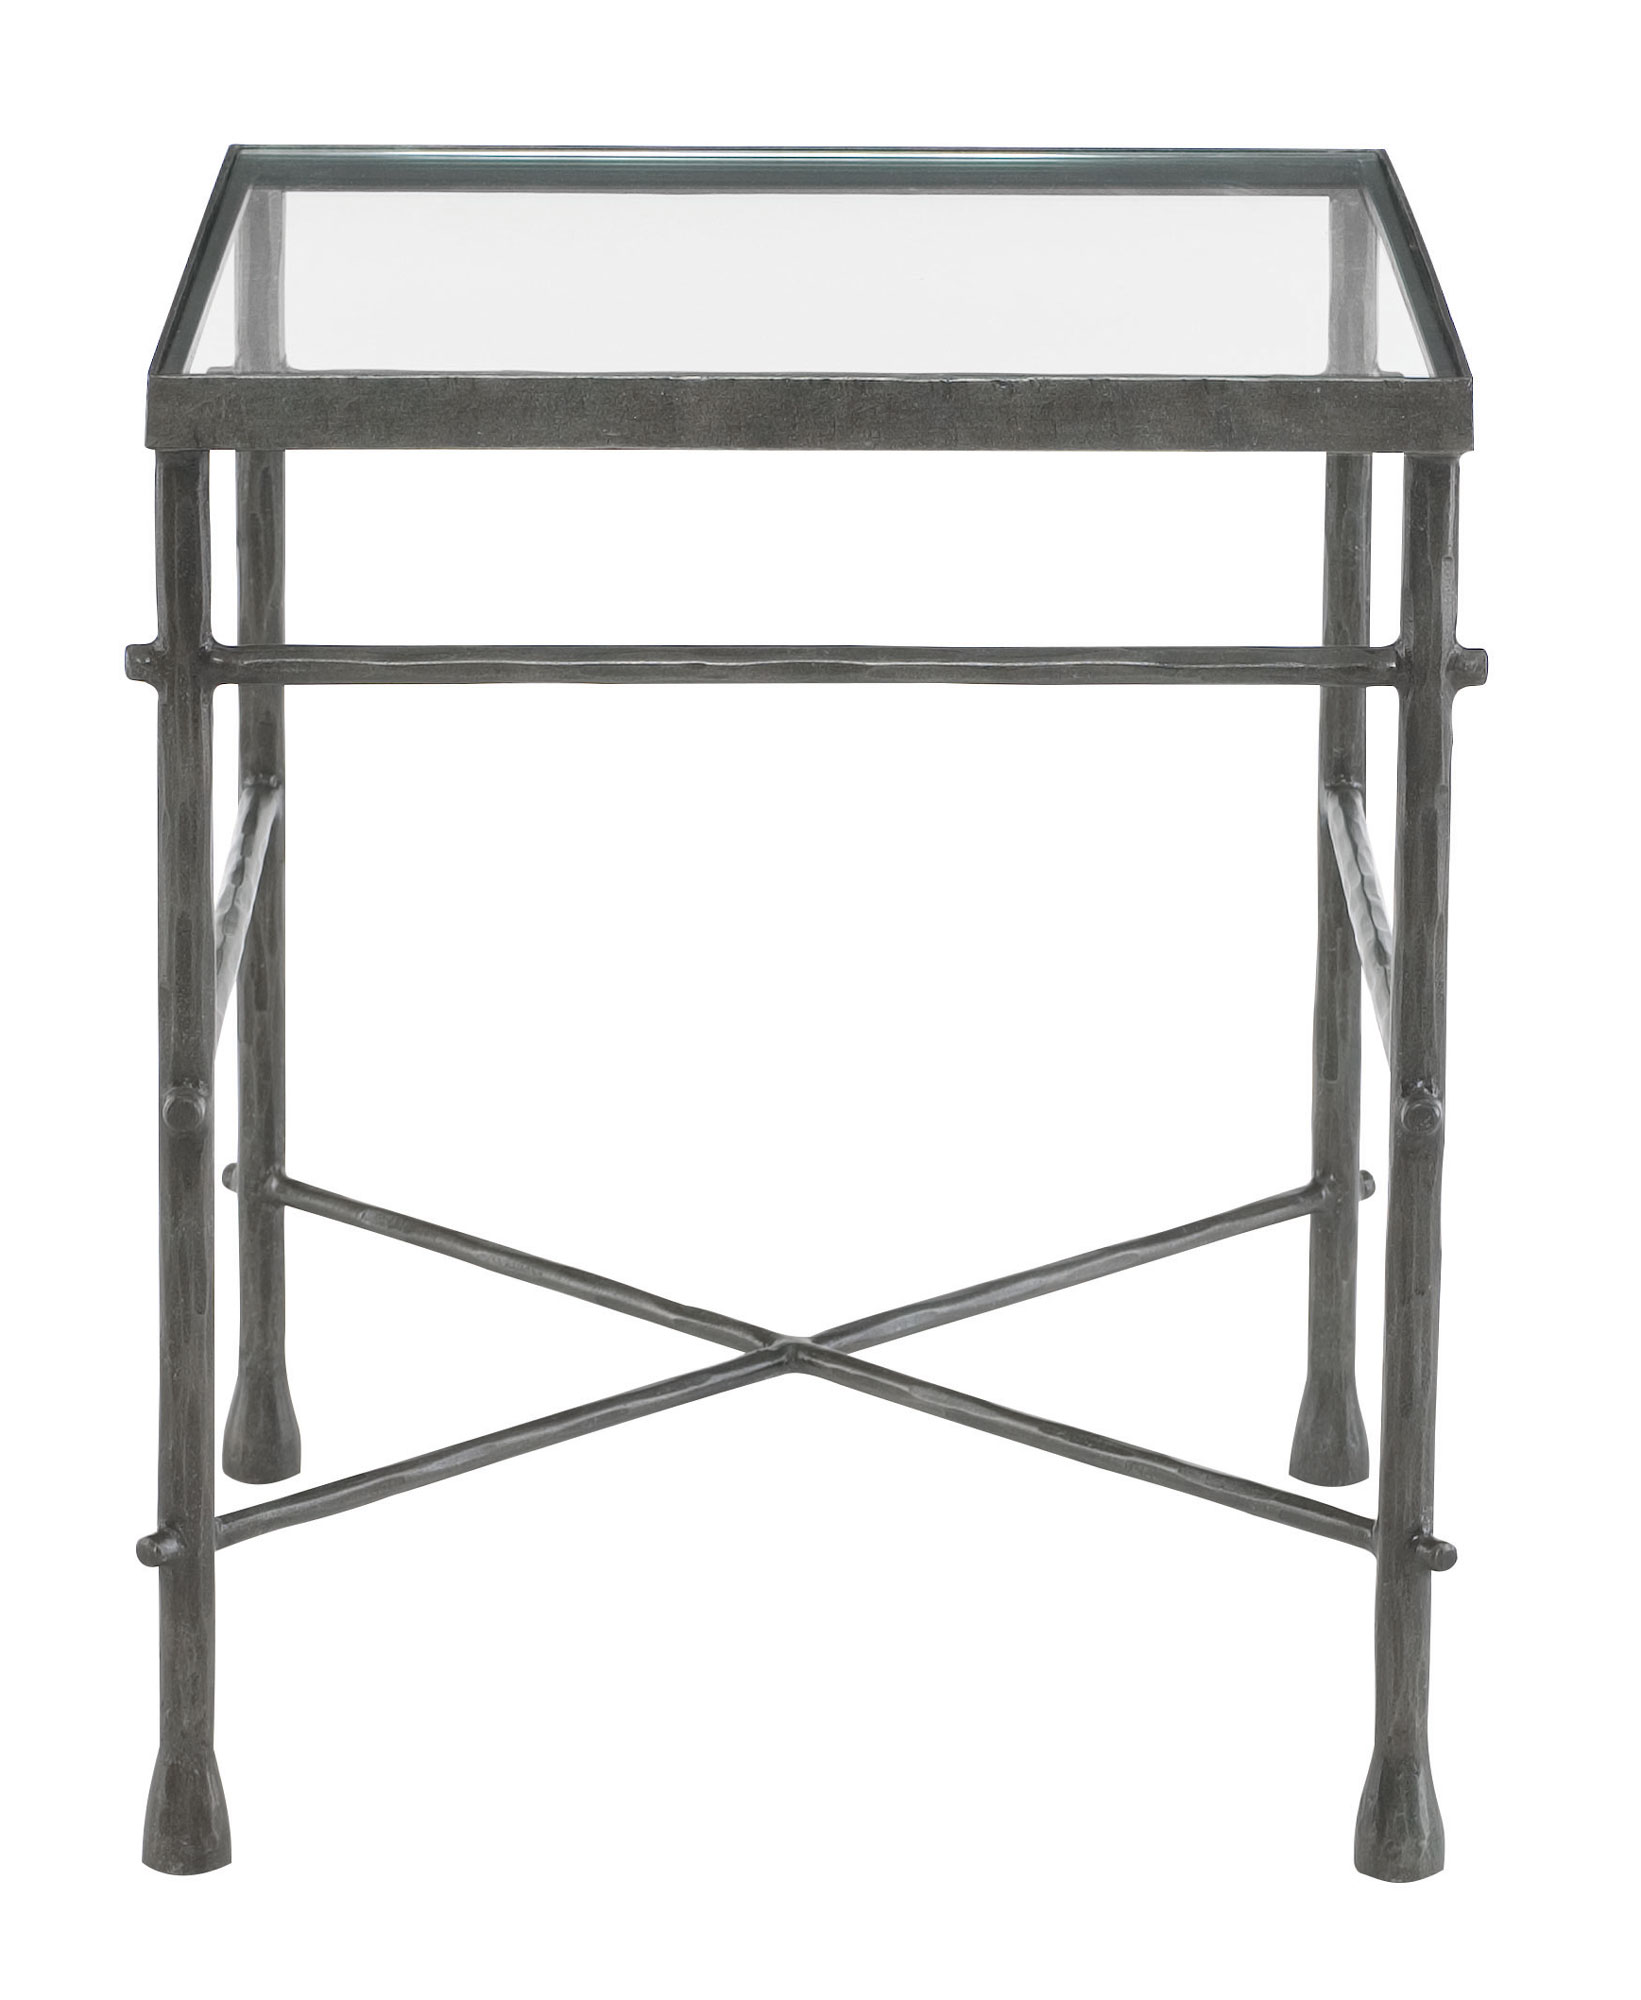 end table glass top and metal base bernhardt black with home decor floor lamps rafferty brown rustic french country coffee accent inc fixer upper couch for drawing room west elm